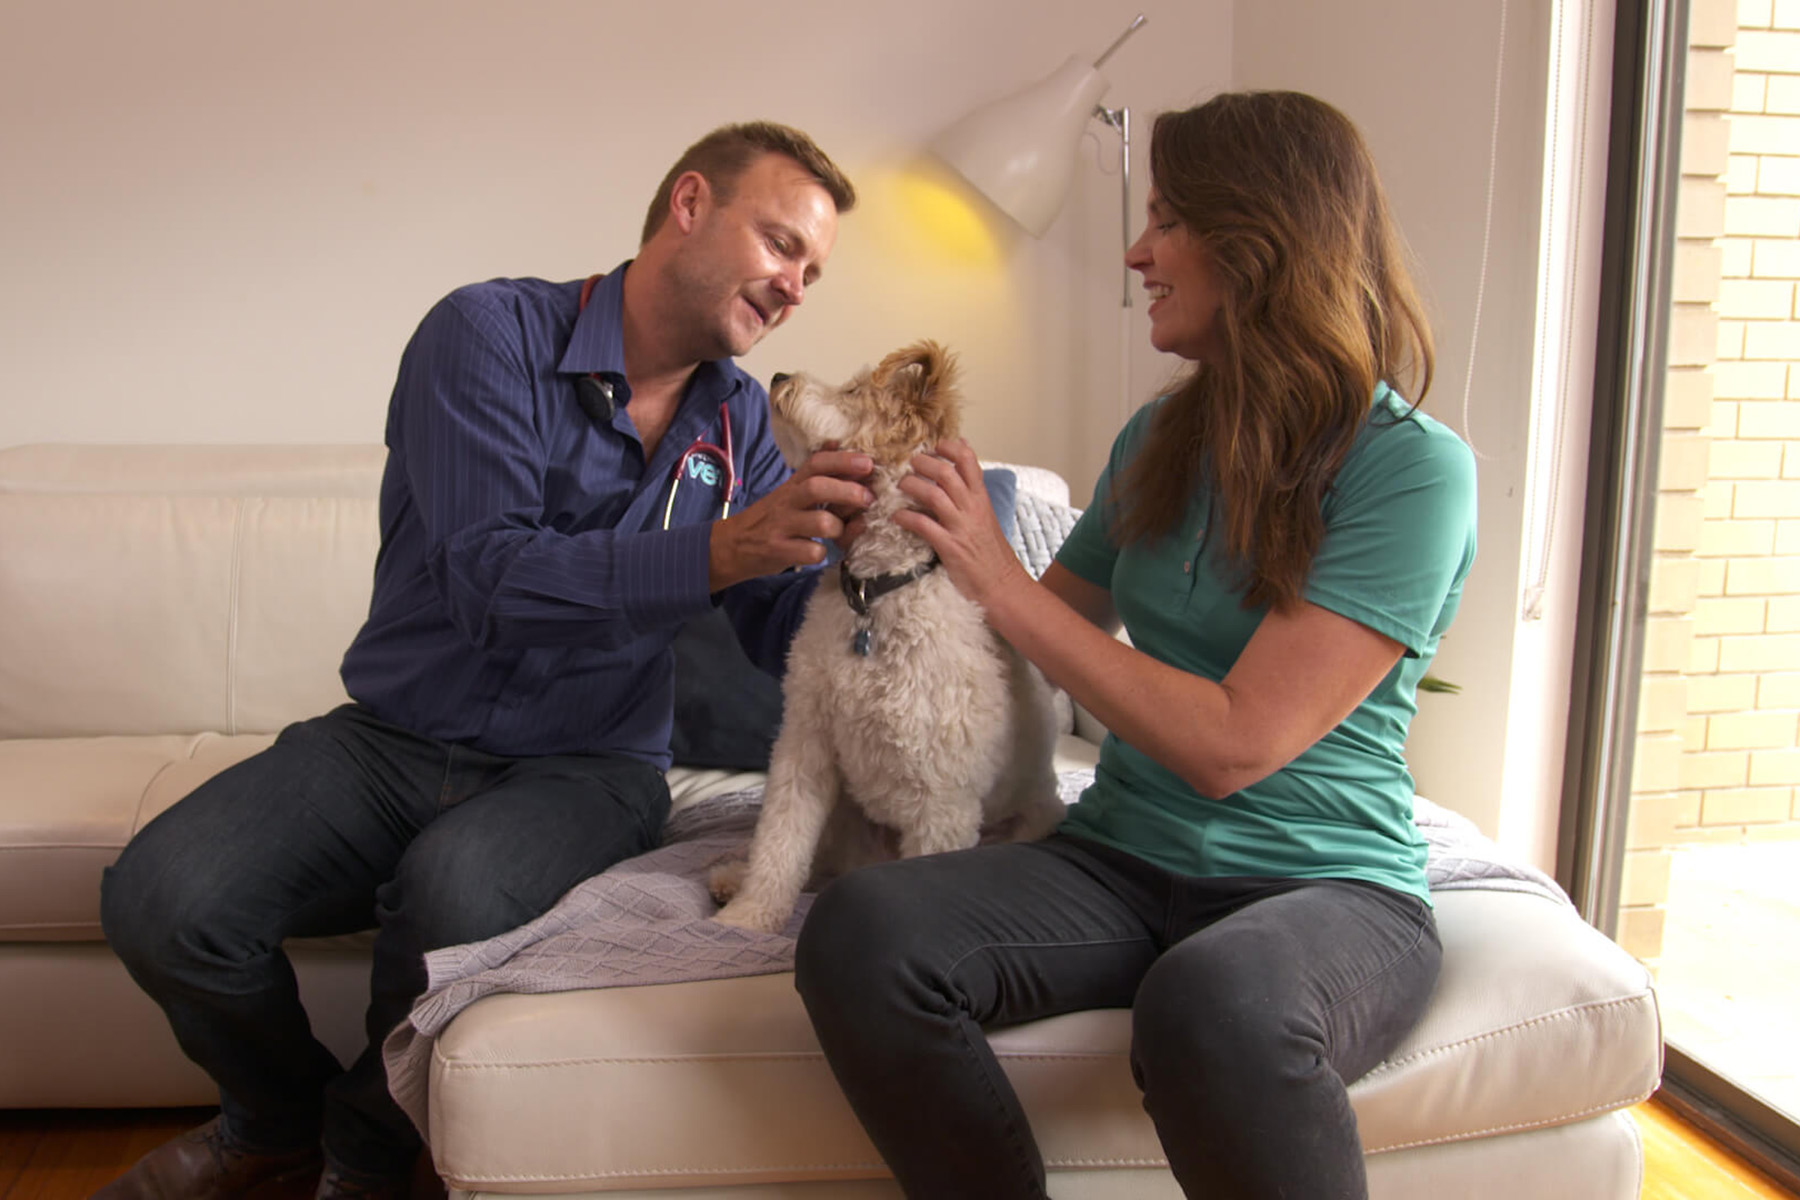 PETstock Vet attending to dog in their home with their owner